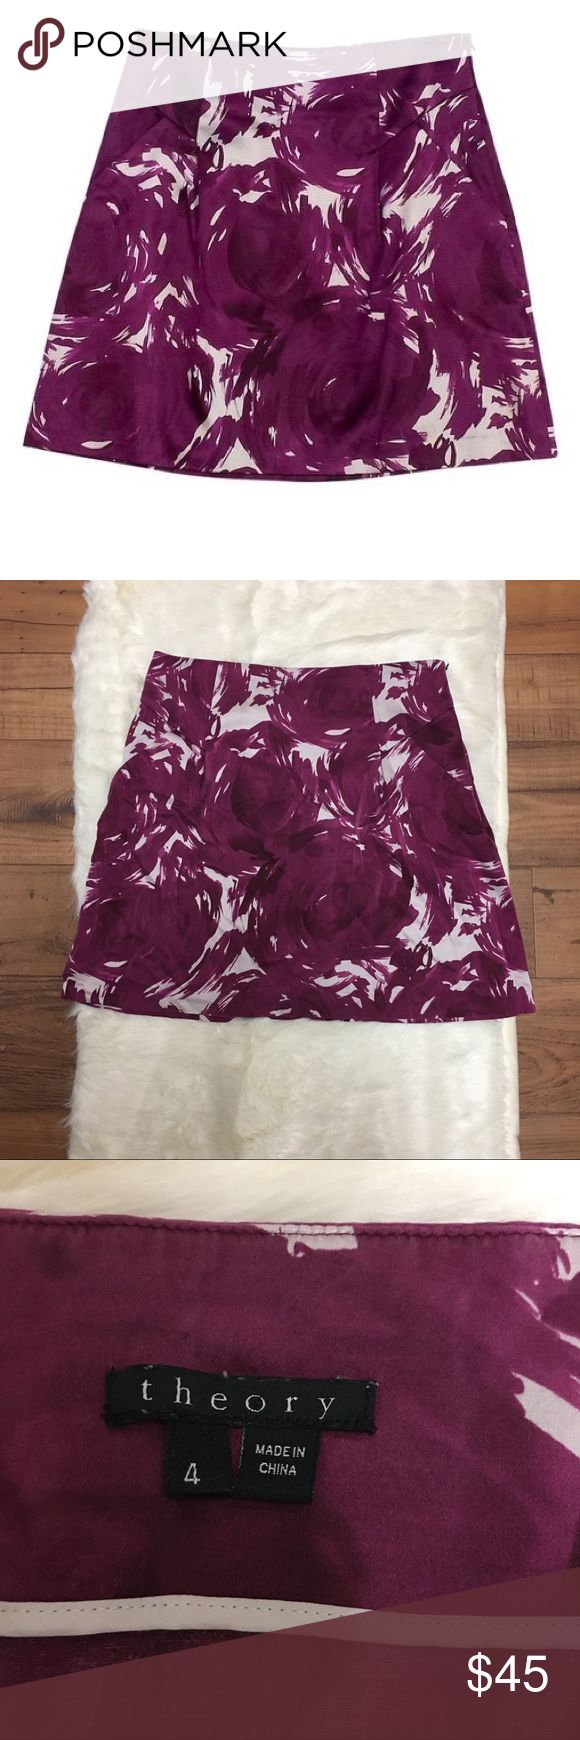 Theory Magenta Swirl Print Miniskirt Theory Magenta swirl print mini skirt. Zipper on the side. Pockets. 55% silk, 42% cotton, 3% spandex. Perfect condition. Length: 17 inches Waist: 14 inches across Theory Skirts Mini